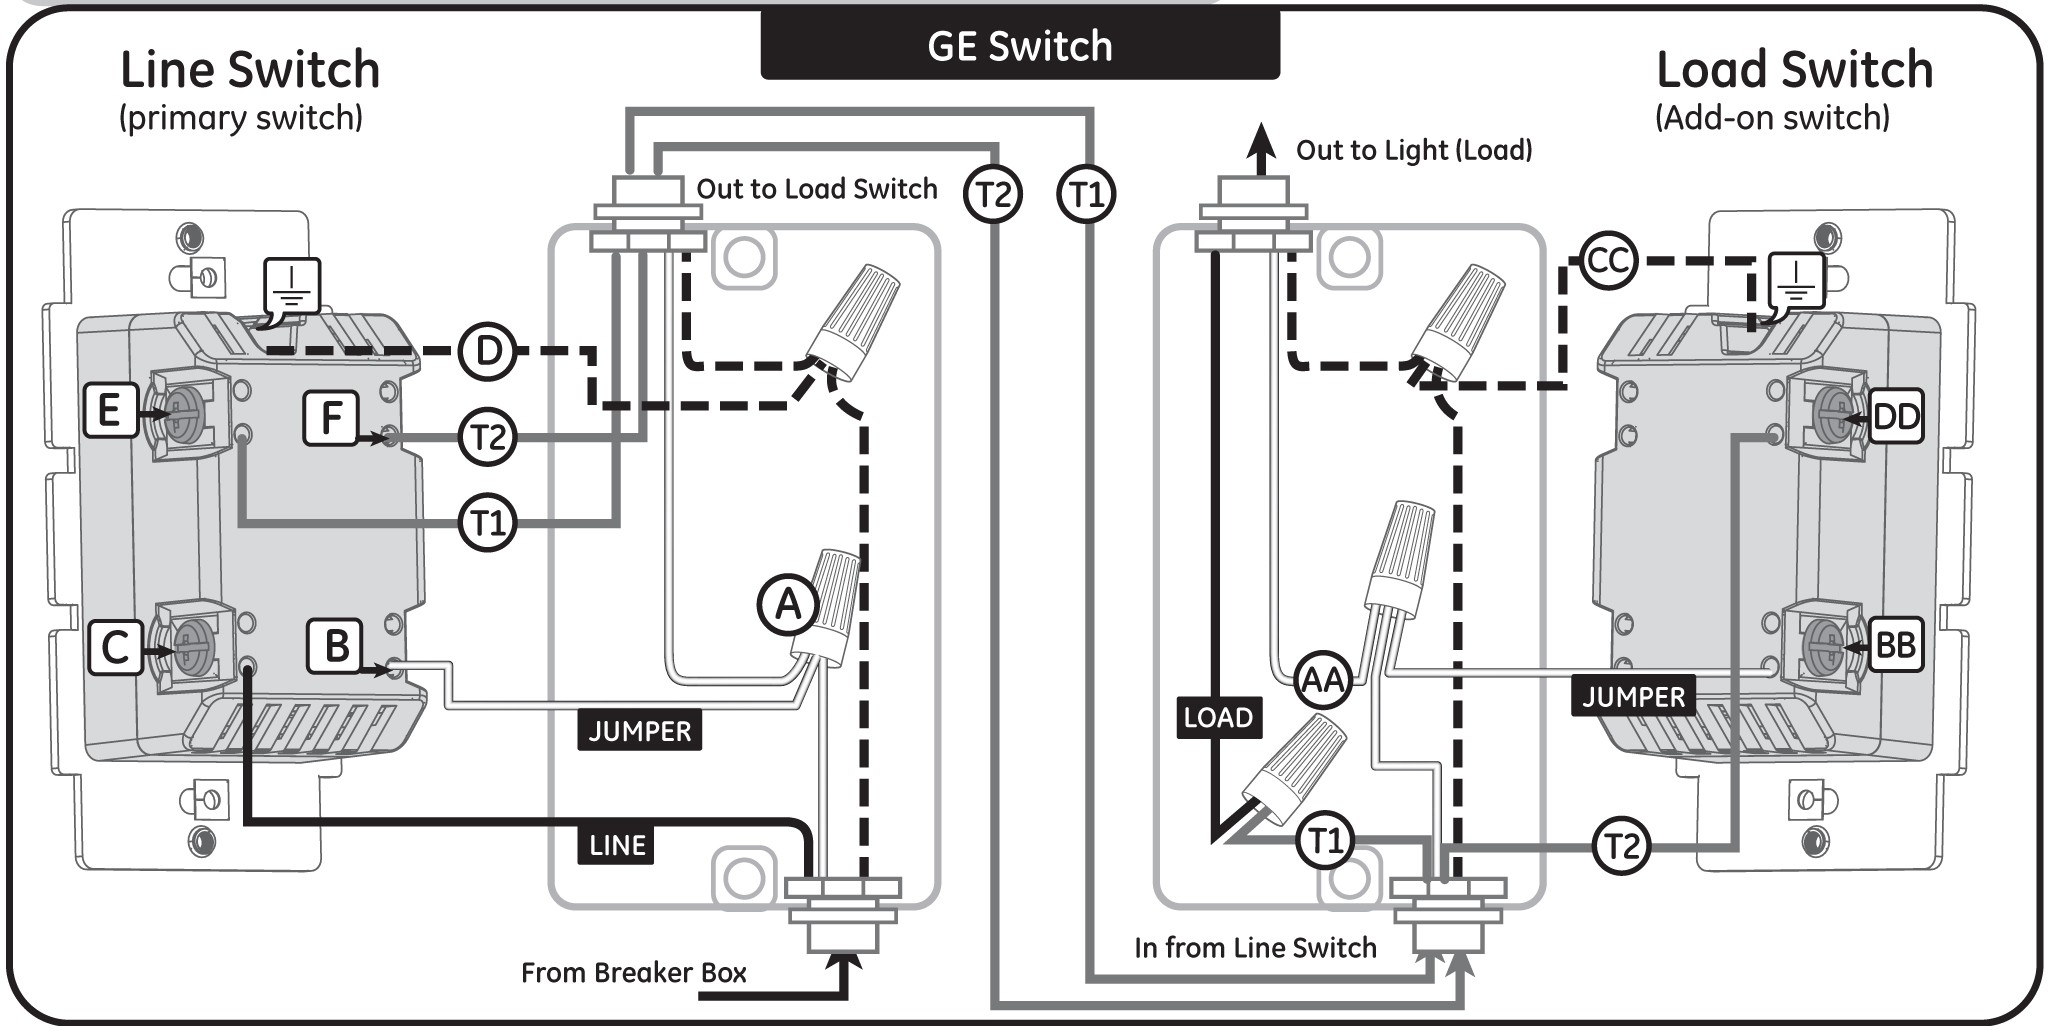 Ge Dimmer Switch Wiring Diagram Blogs Breaker Box Basic Gm Simple Schema Wire